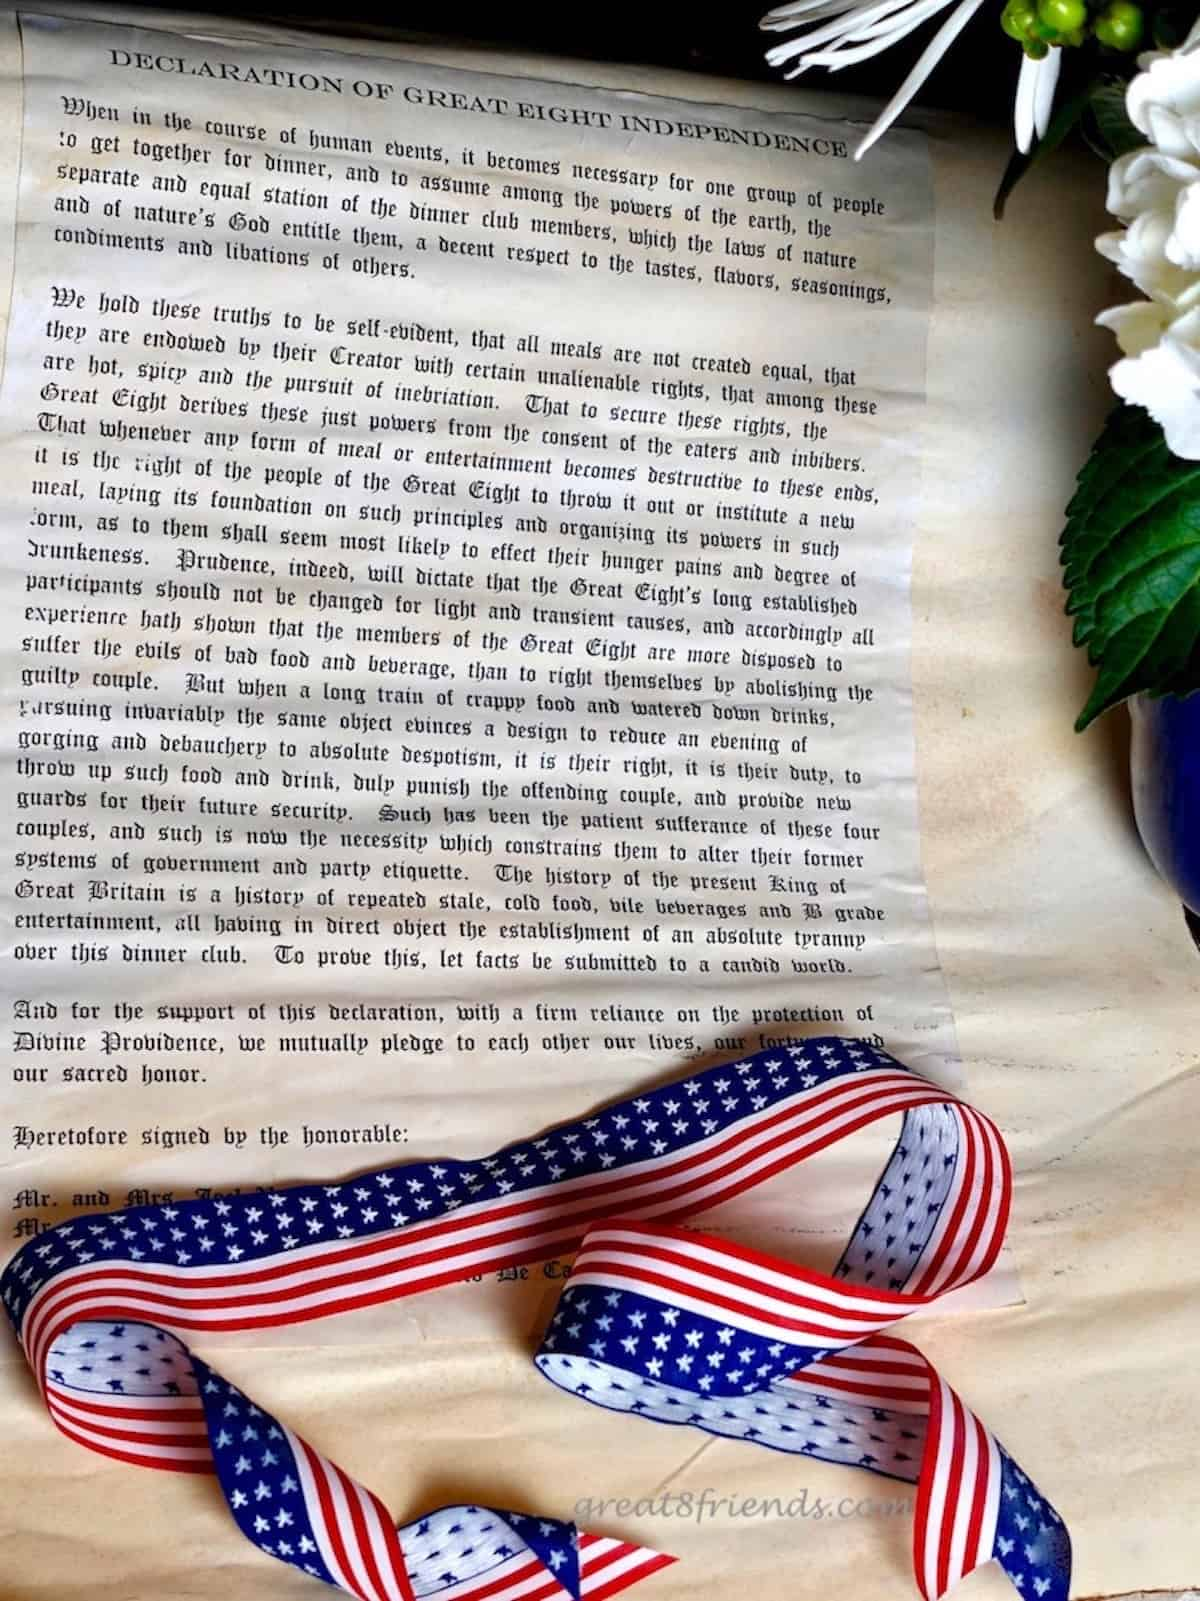 A Version of the Constitution that is a dinner invitaiton.